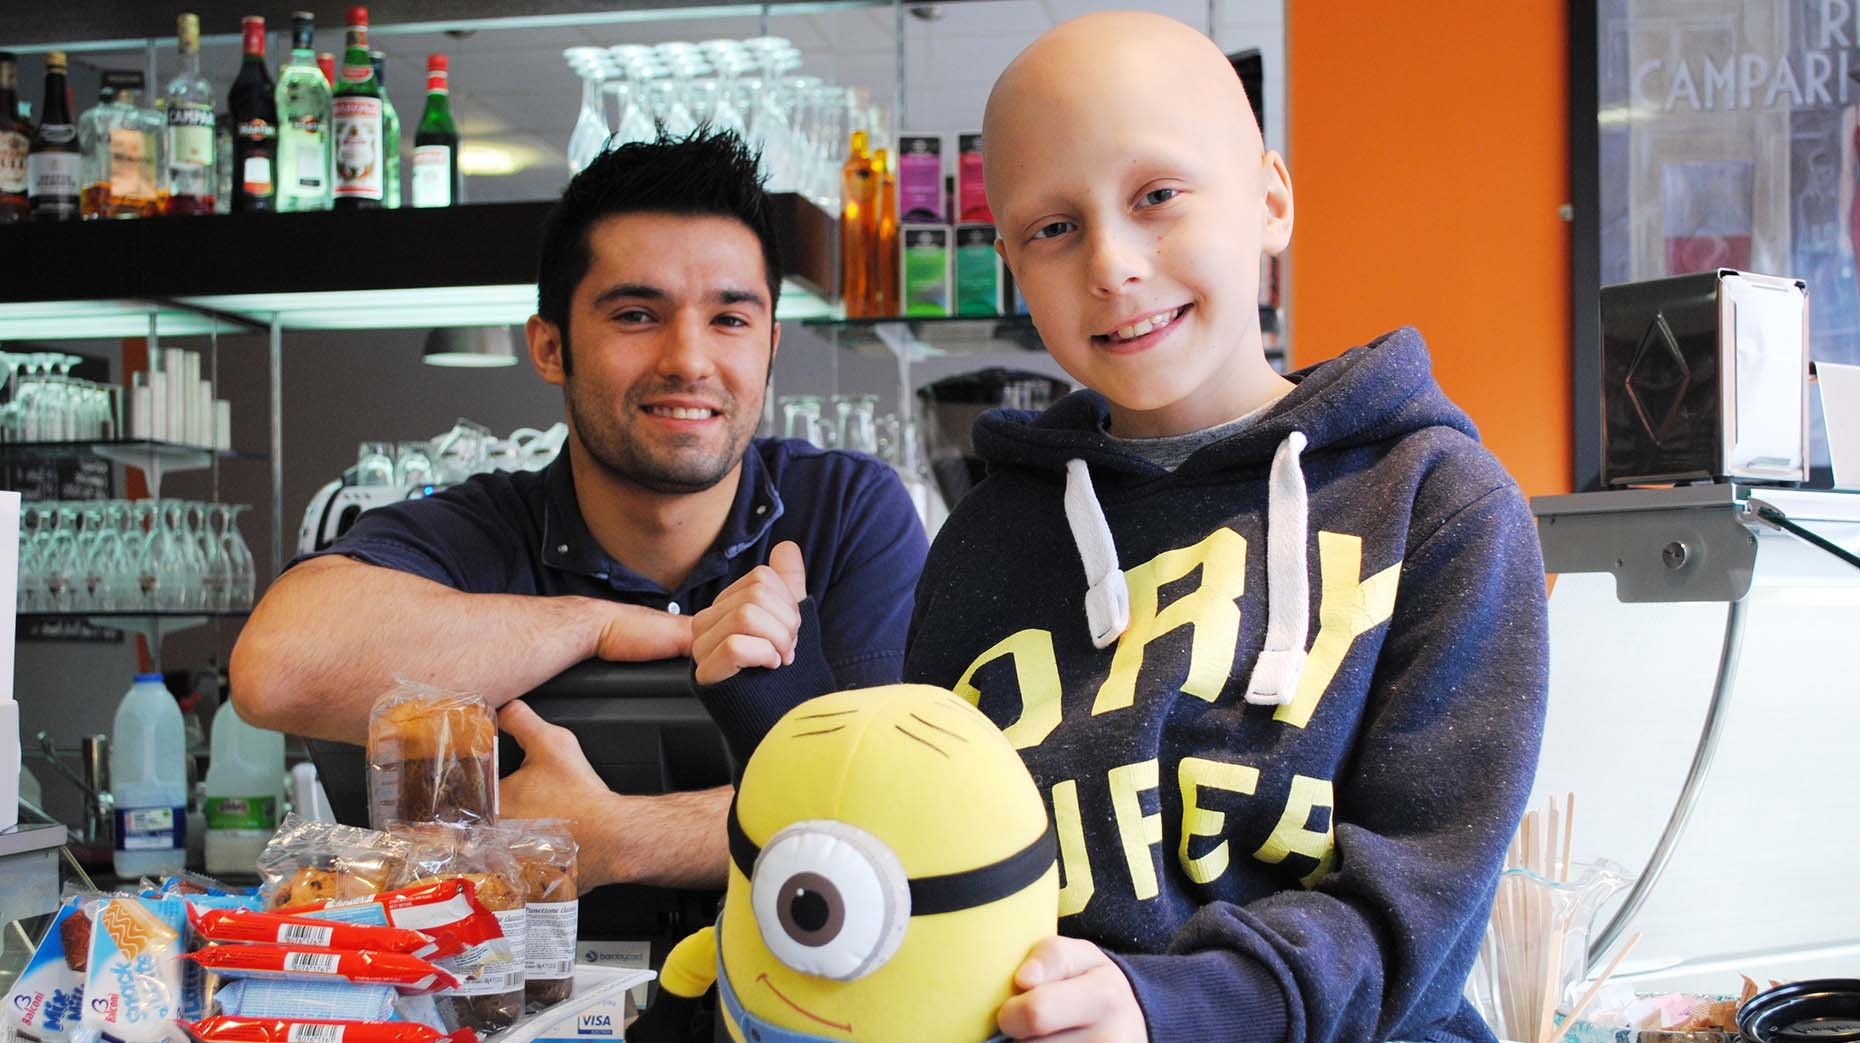 Bar Unico owner Gio Carchedi ran the Lincoln 10K dressed as a minion for 10-year-old Ethan Maull. Photo: Shooting Star